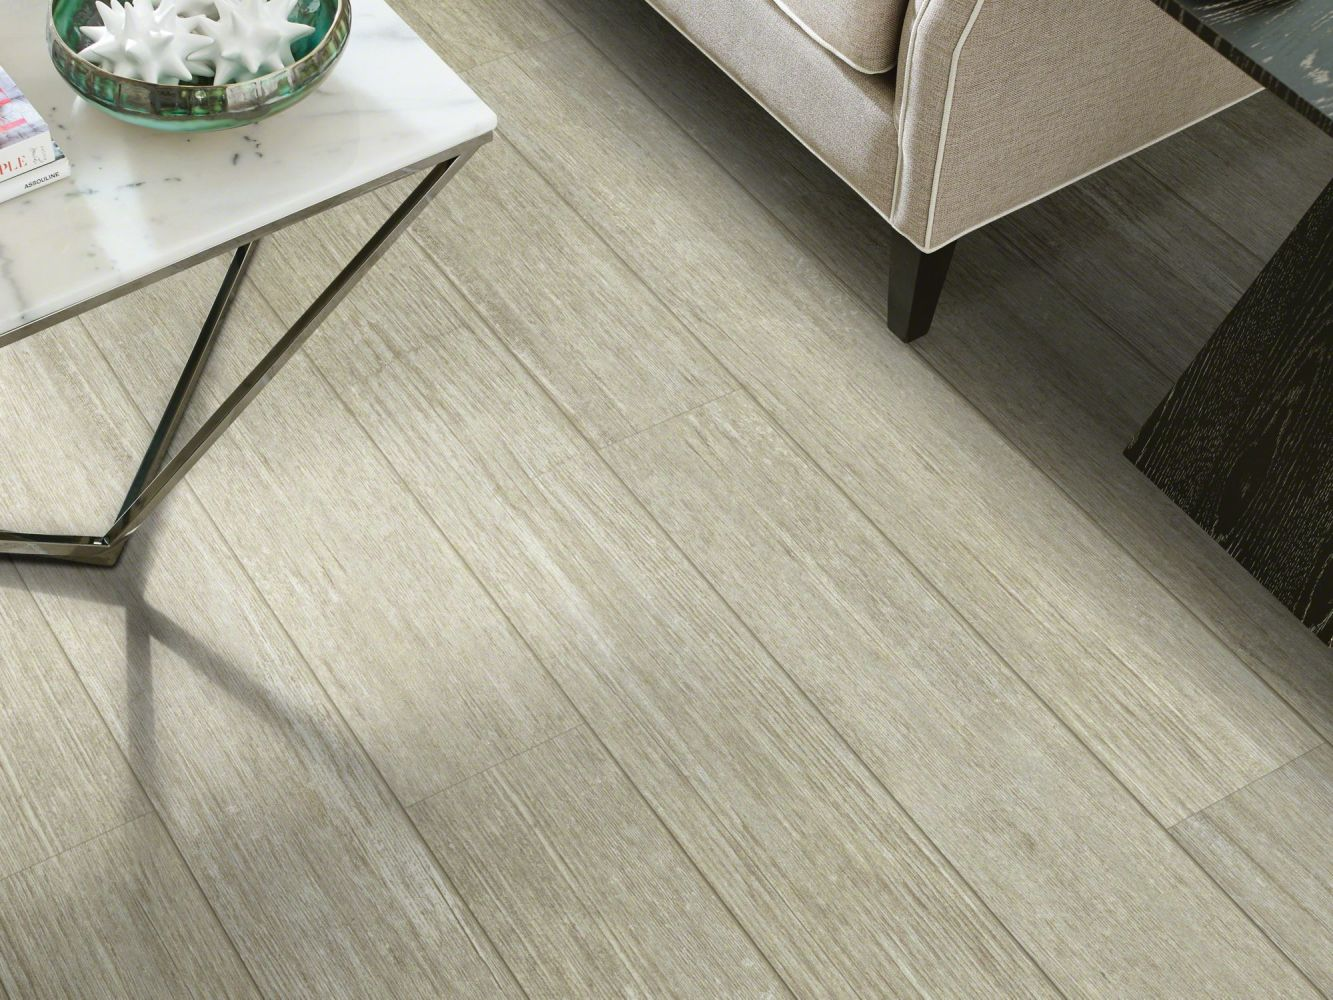 Shaw Floors Vinyl Residential Uptown Now Wpc+ Sweet Auburn 00116_0999V